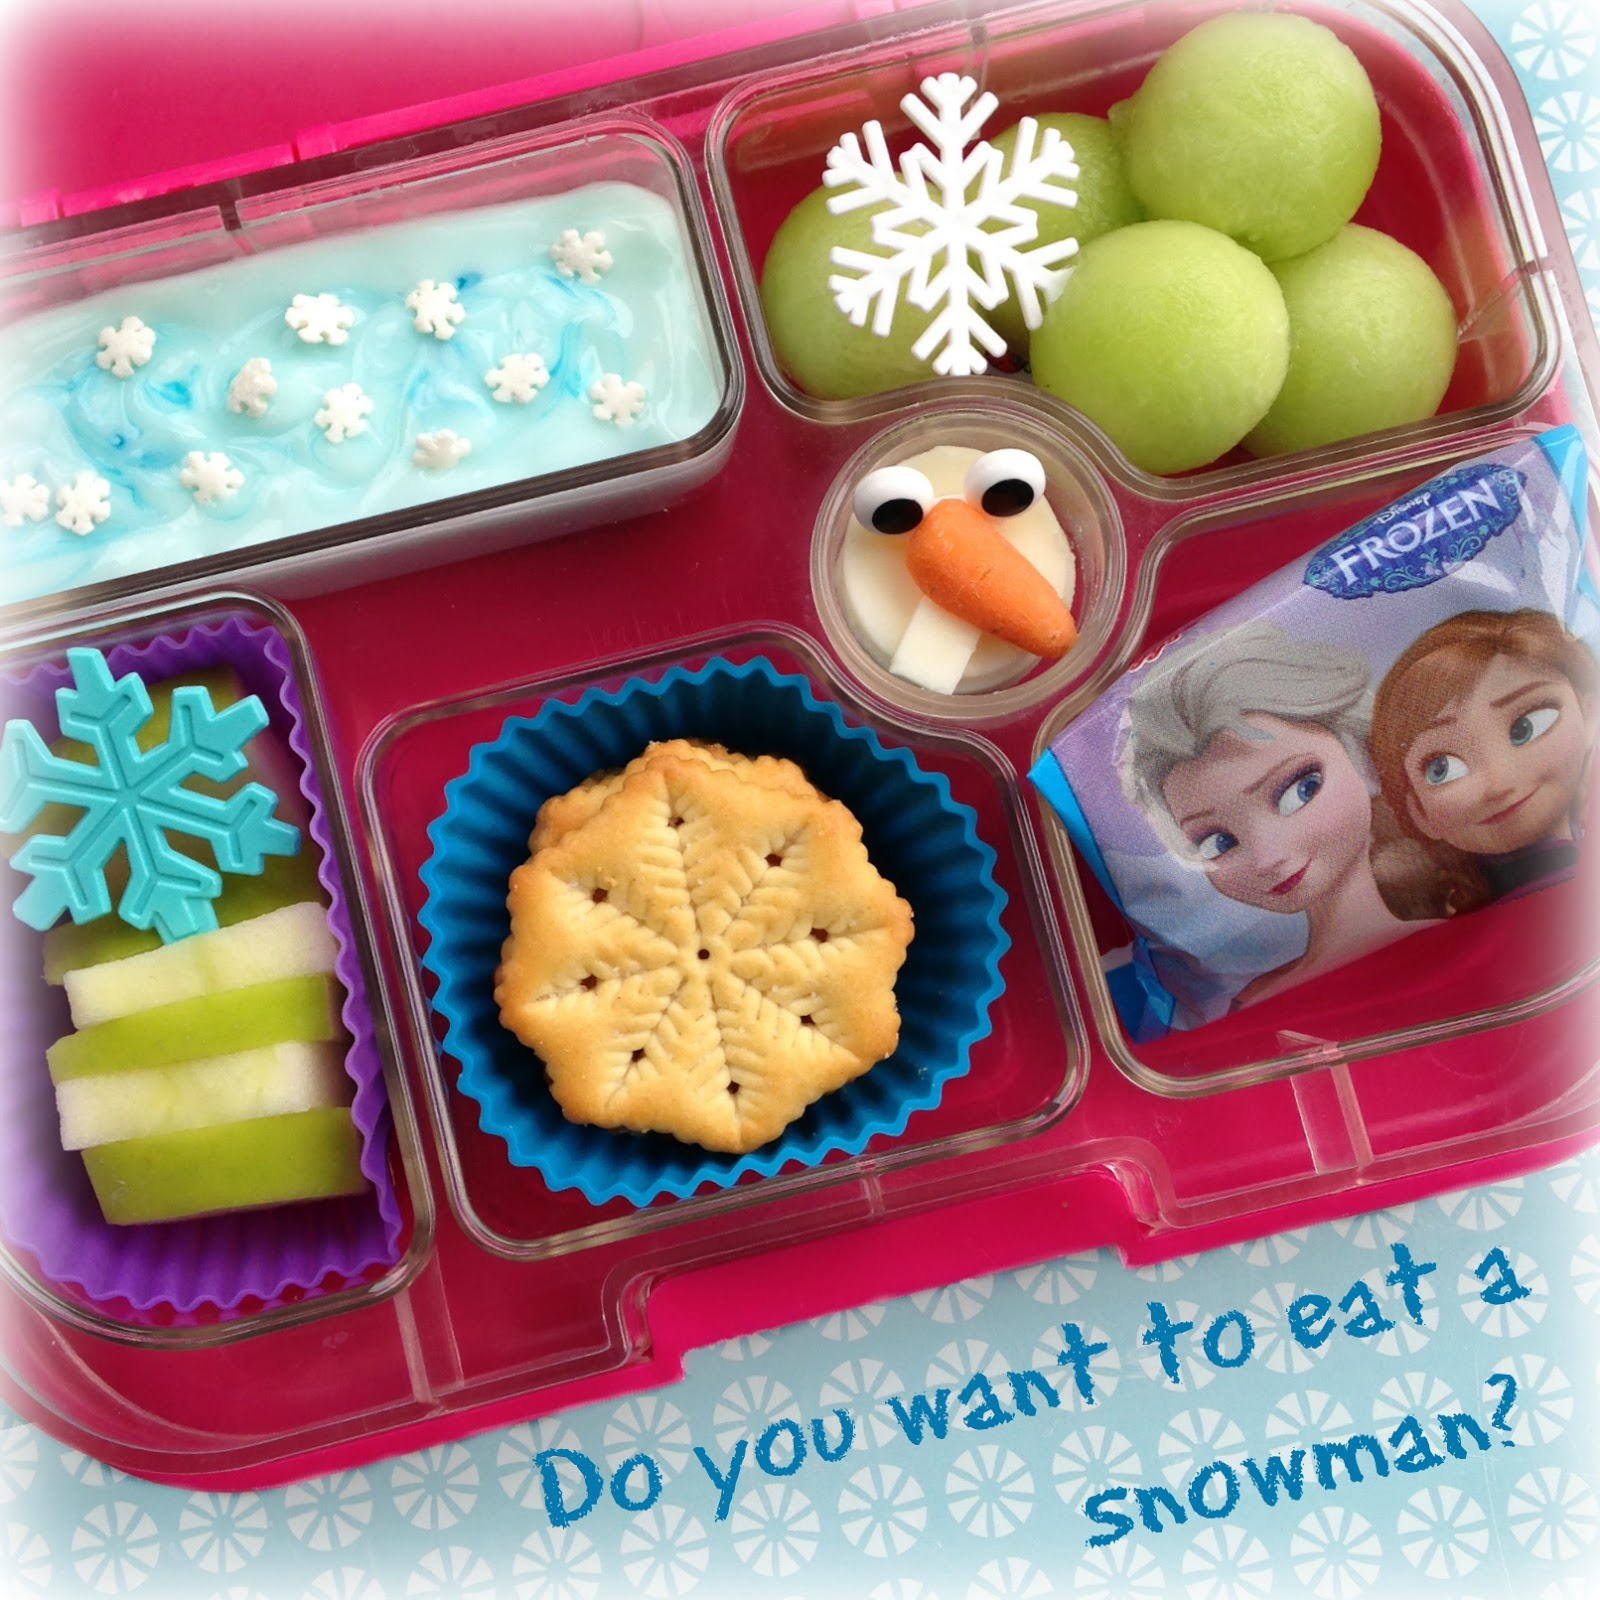 Disney's Frozen bento Lunch with cheese Olaf snowman